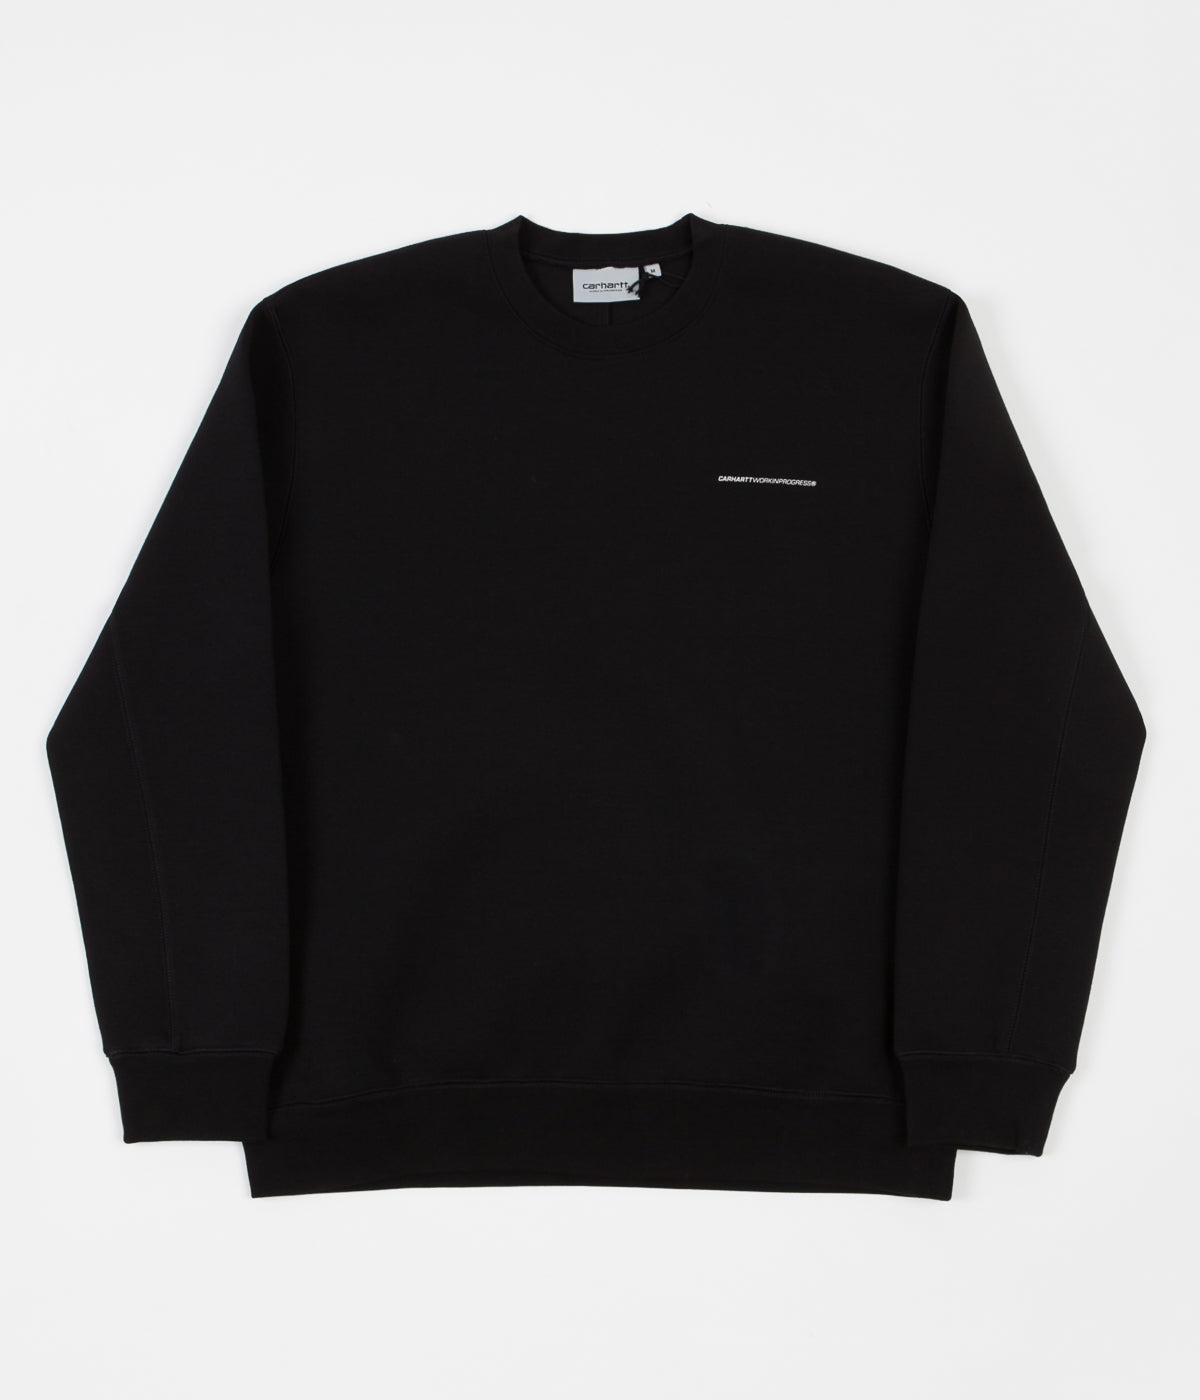 Carhartt Beta Crewneck Sweatshirt - Black / Reflective